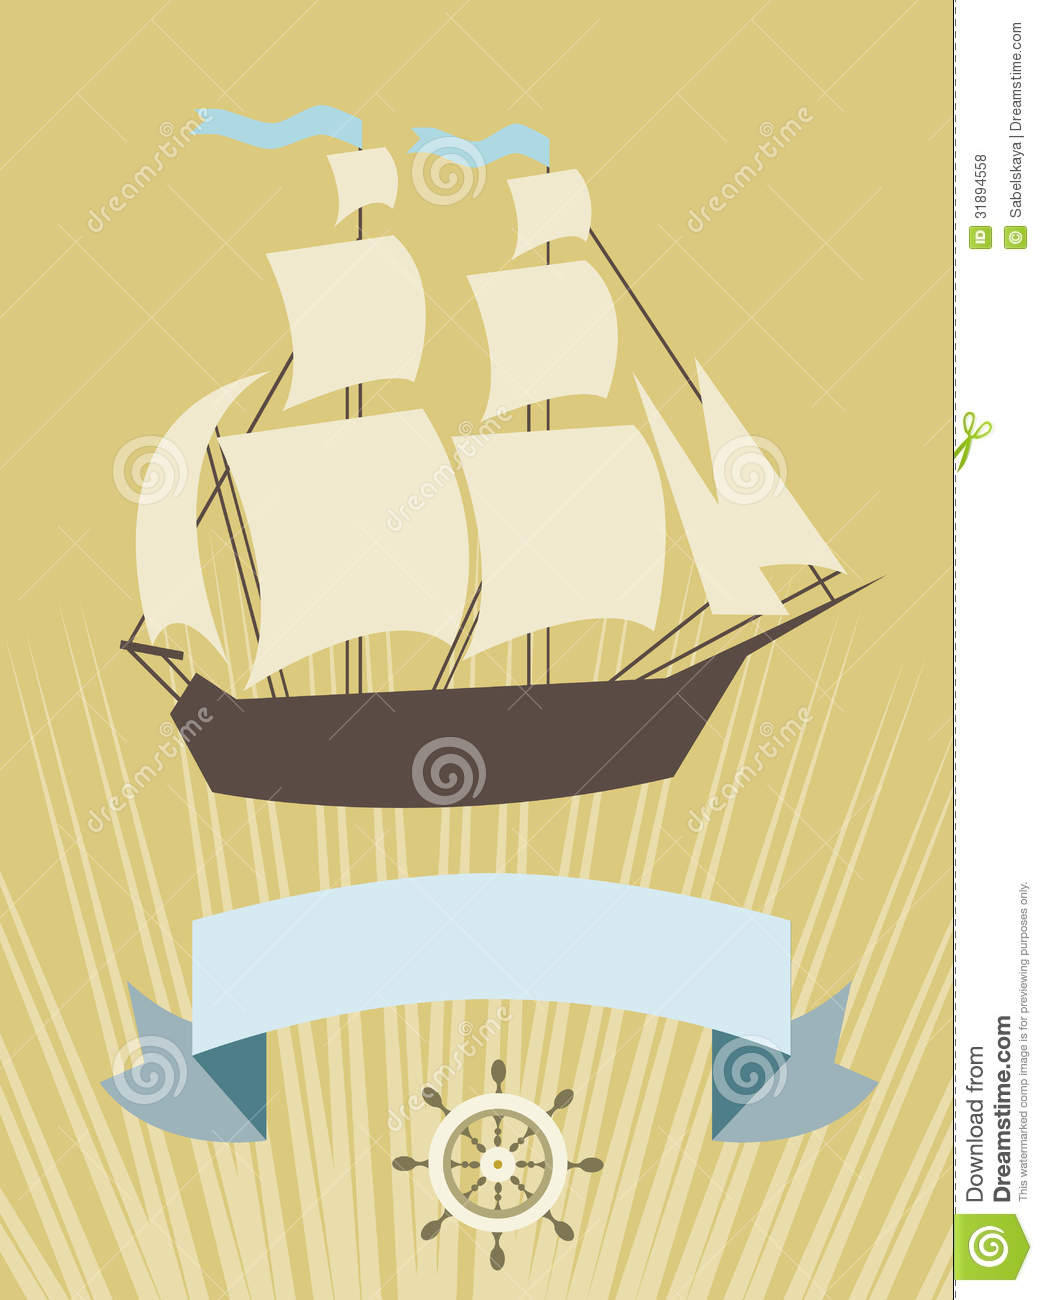 Sailboat With Banner For Your Message Royalty Free Stock Photos - Image: 31894558